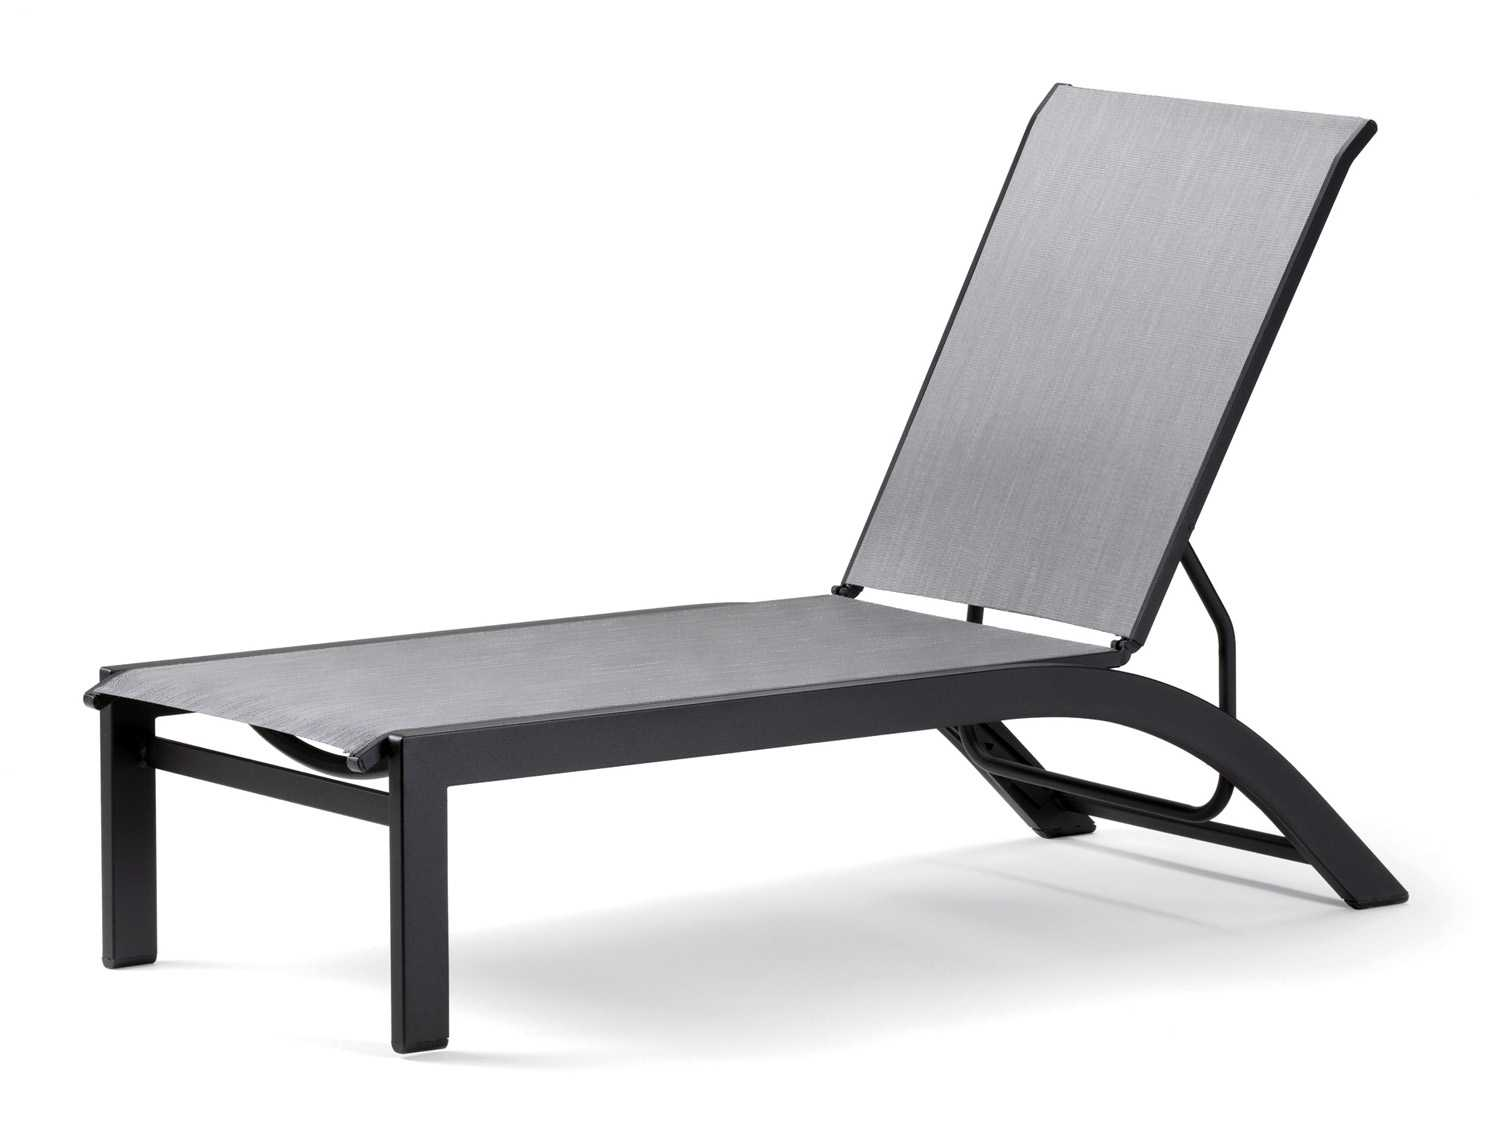 sling chaise lounge chair chevalier chairs for sale telescope casual kendall aluminum lay flat patio